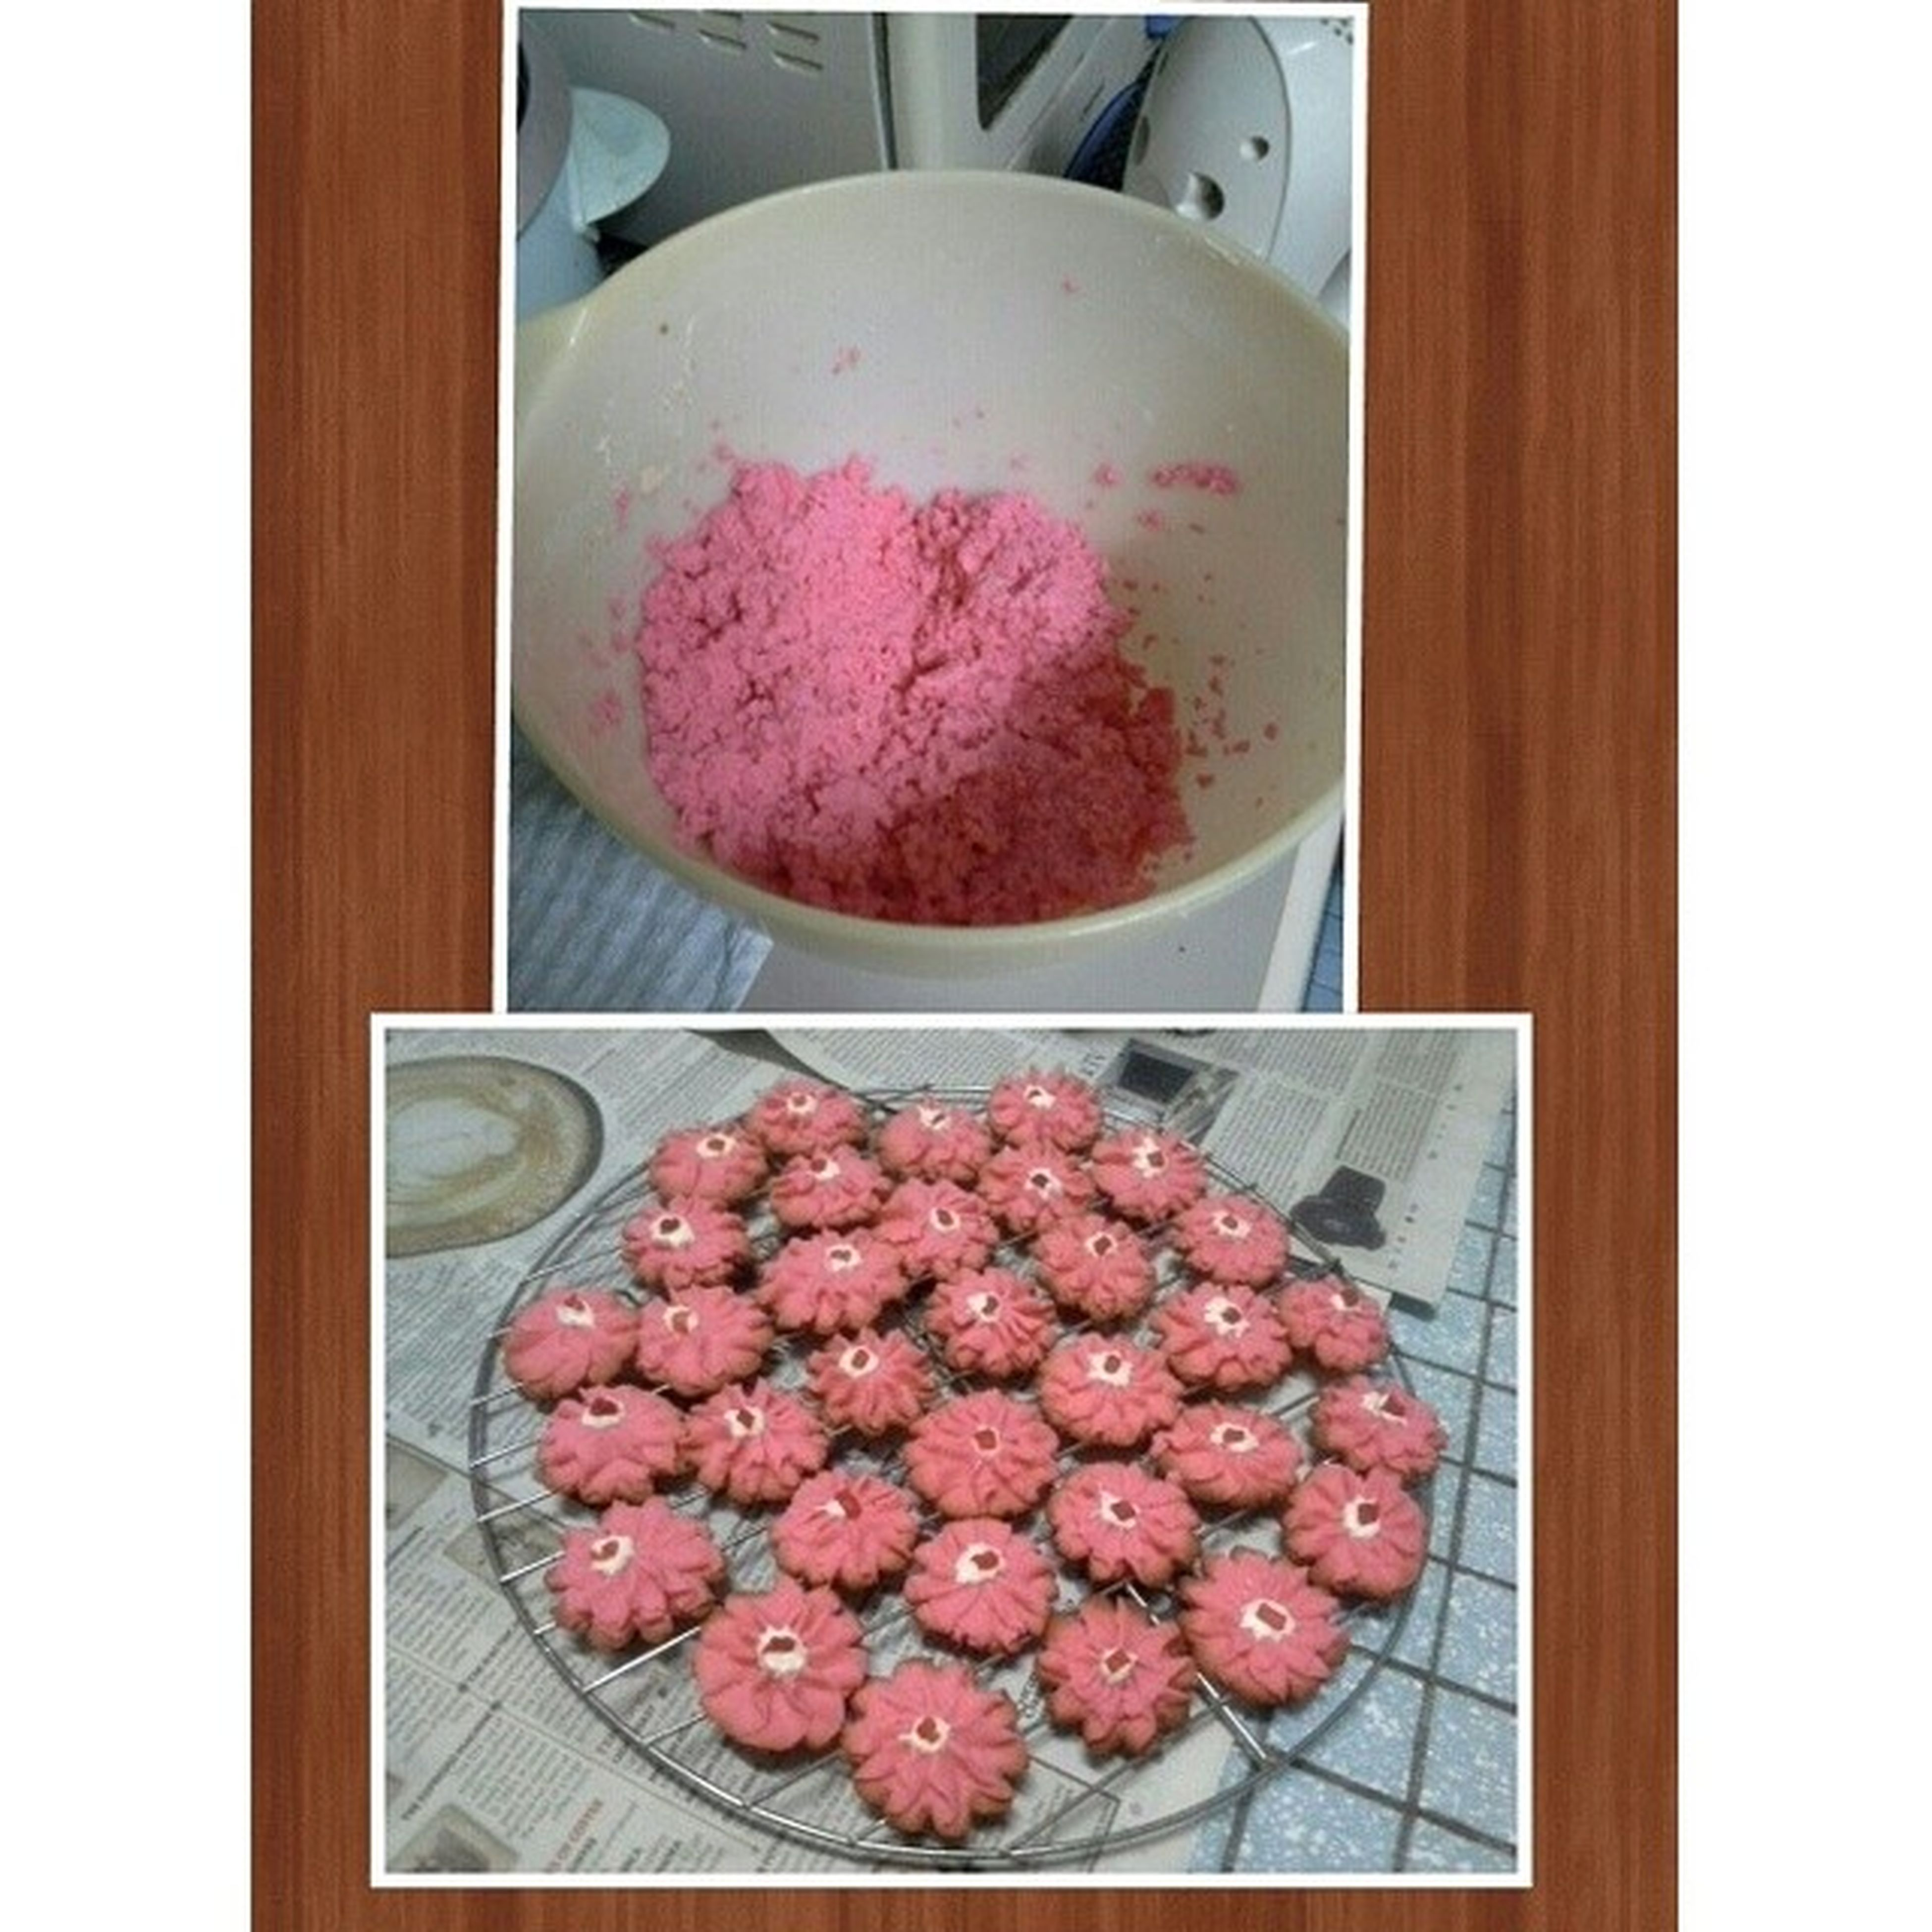 Done for another biscuit again Red Velvet Samperit Biscuits for sale tomolo